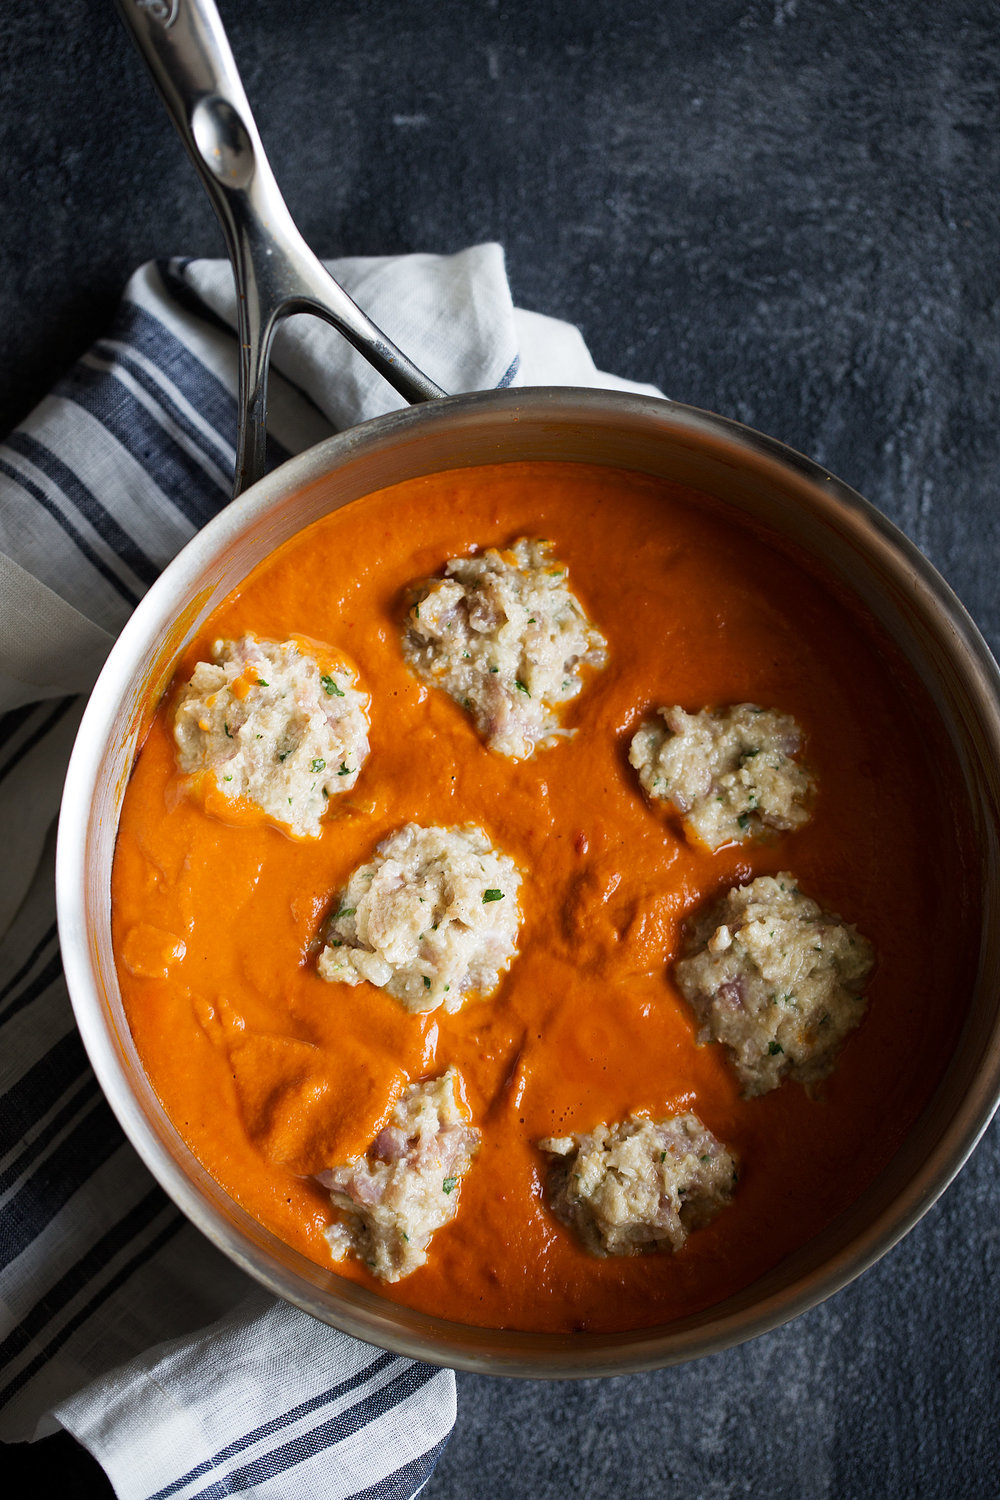 meatballs dropped into coconut curry sauce